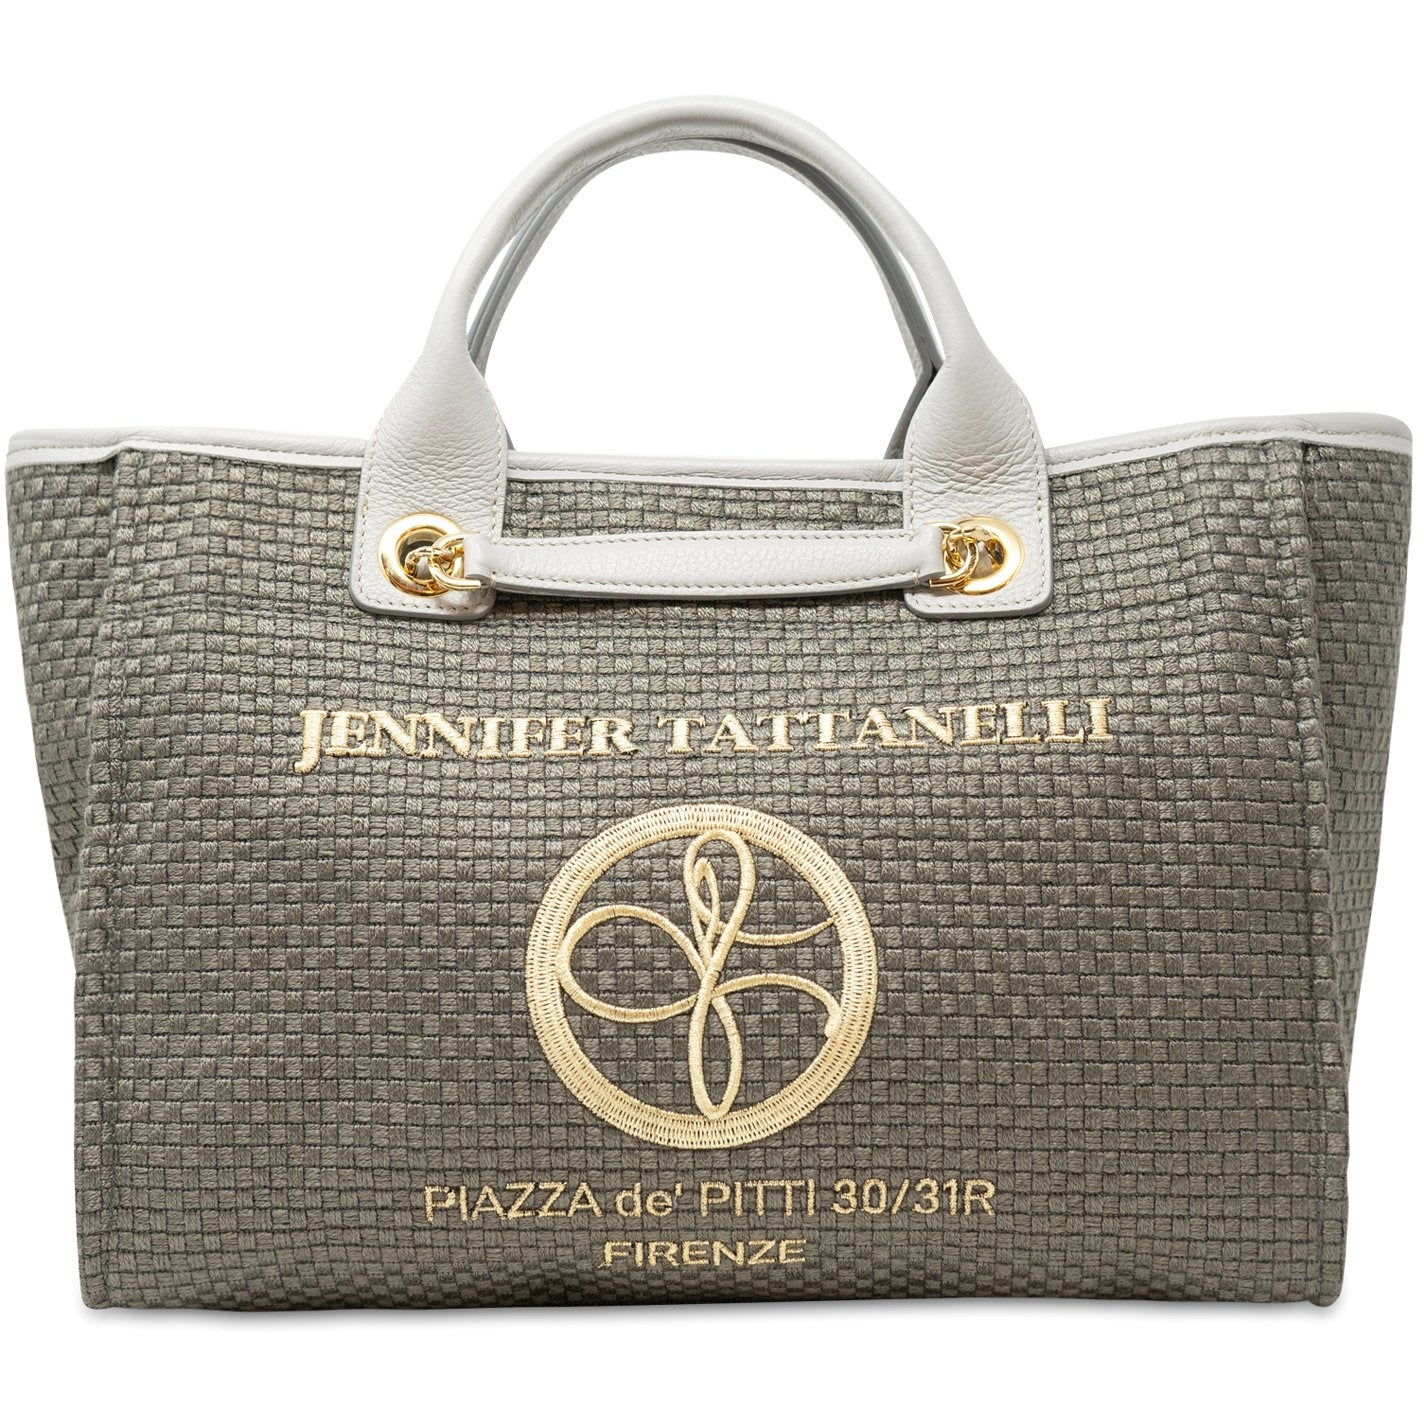 The Palm Beach Medium Shopping Bag in Pearl Grey - Jennifer Tattanelli